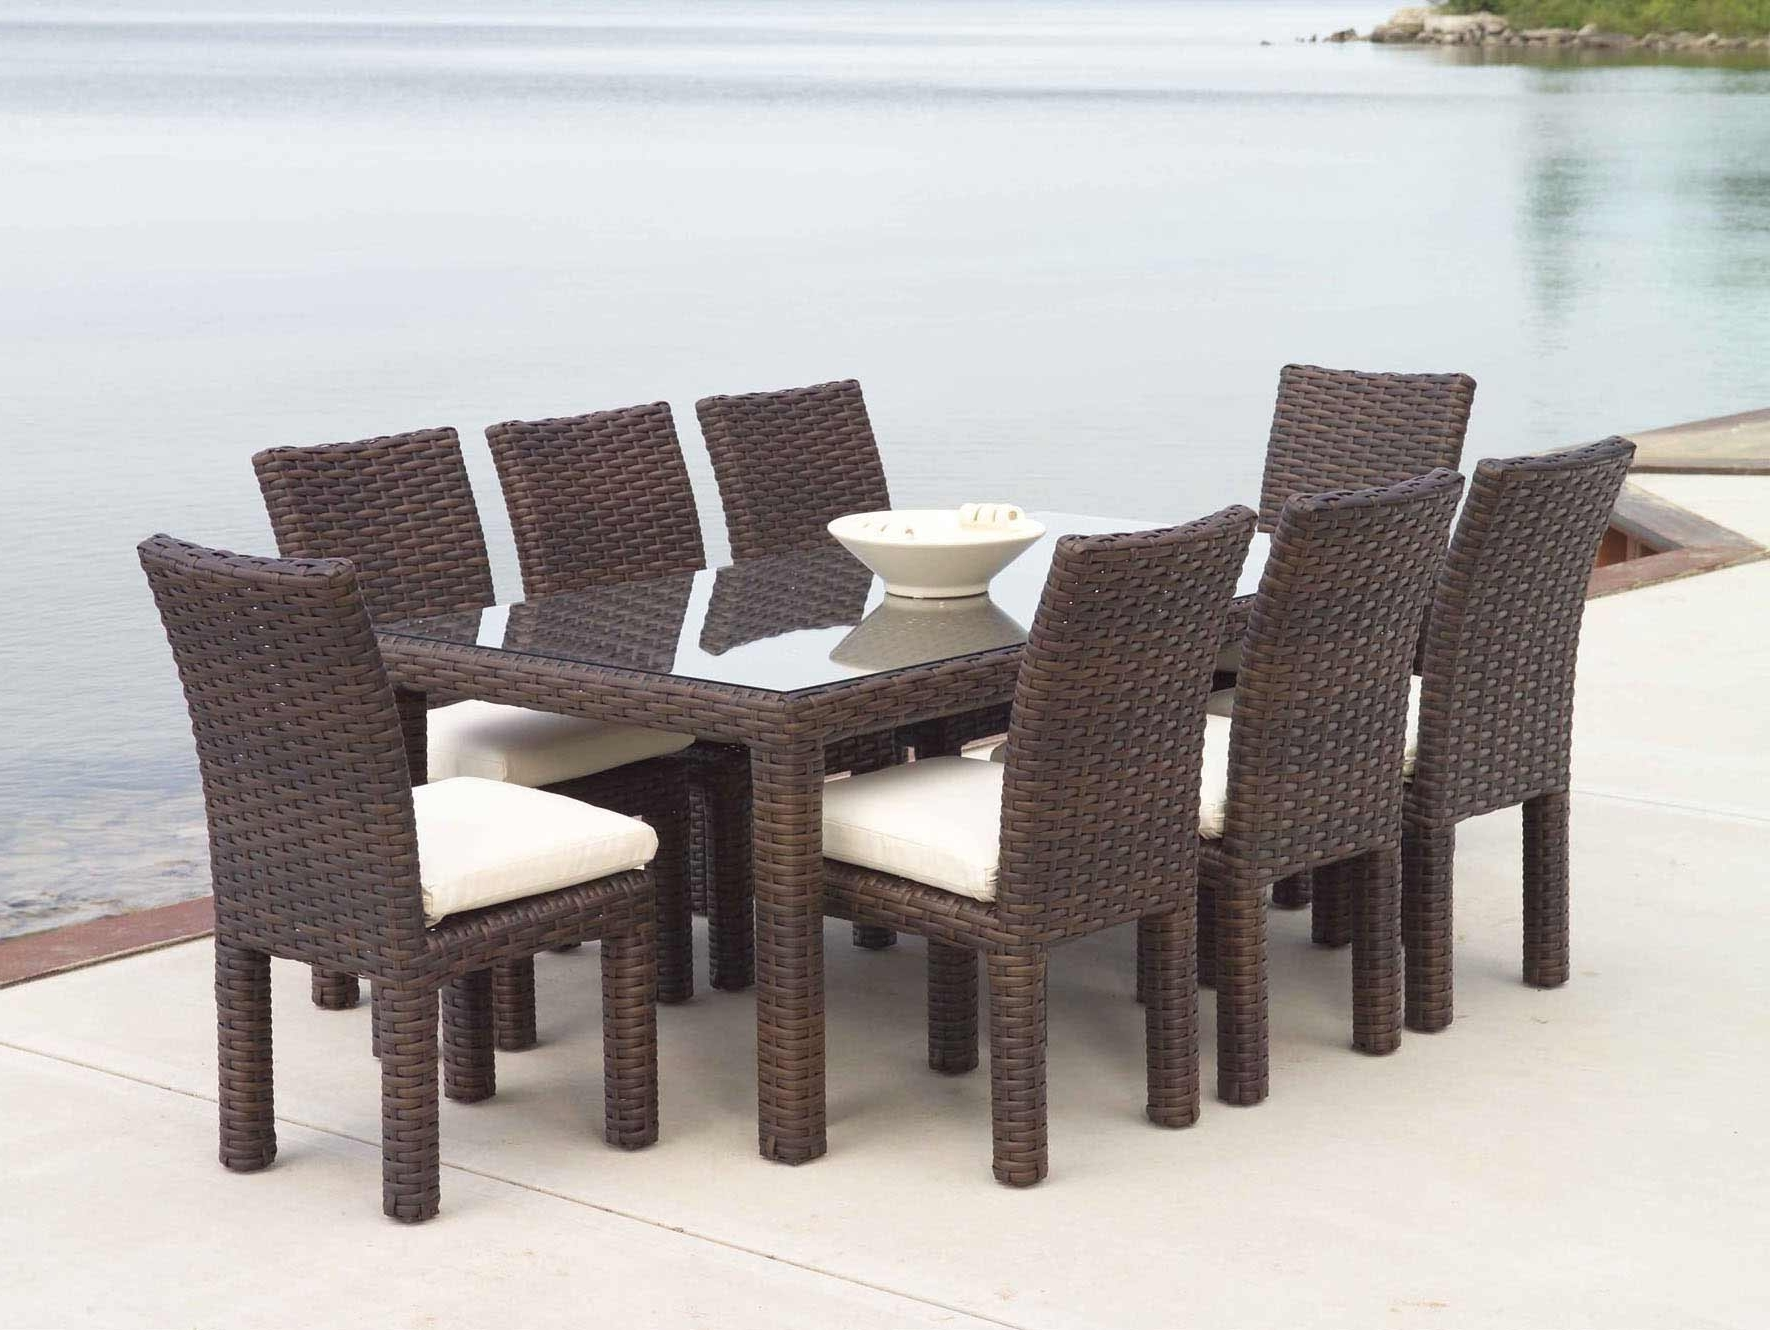 Wicker Patio Furniture (View 9 of 25)